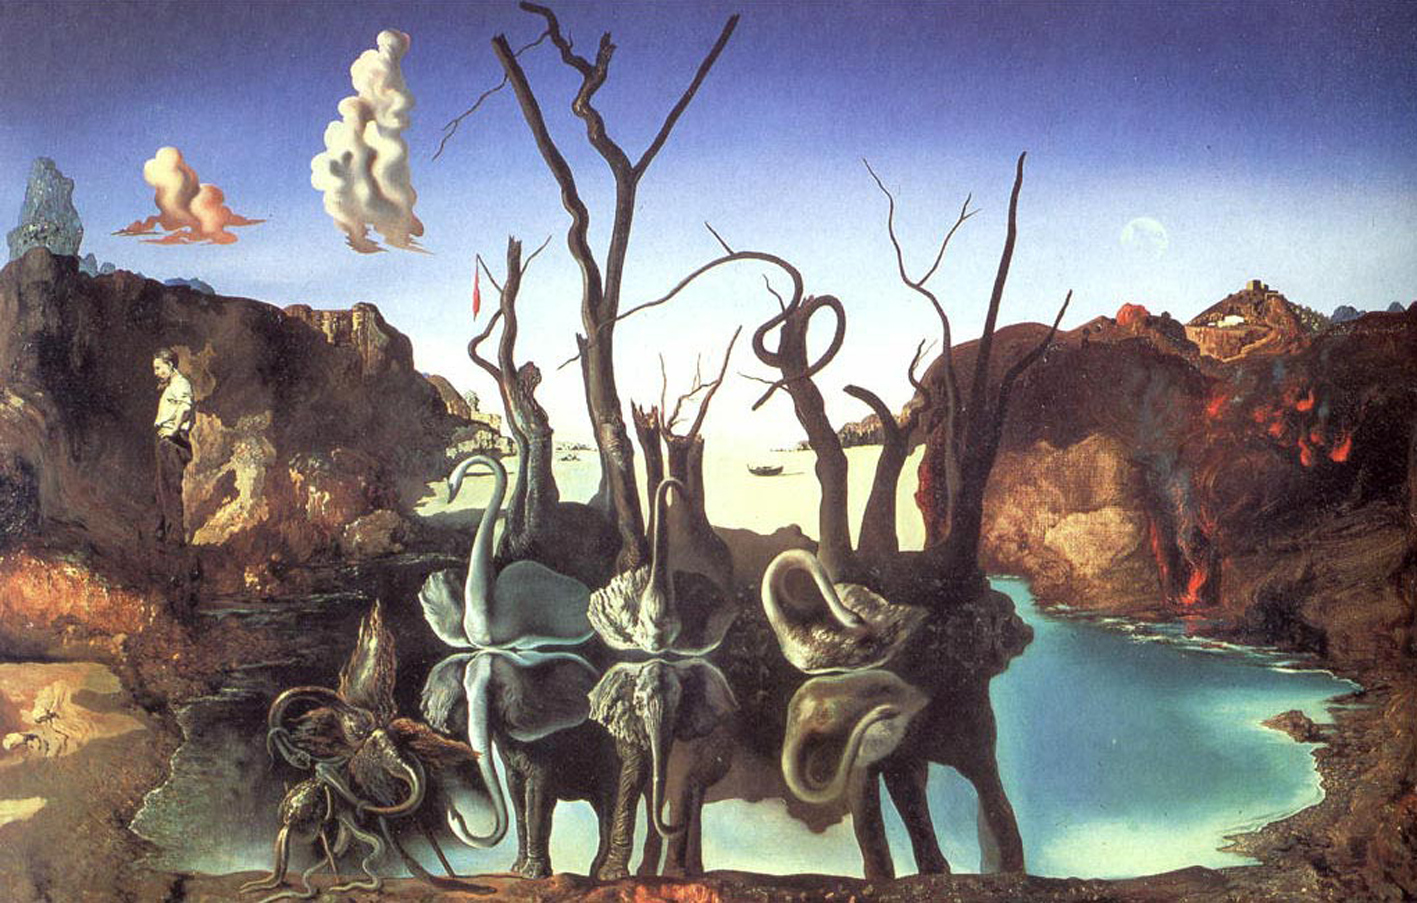 salvador dalis work Full information about salvador dalí's artwork catalogue raisonné of paintings, collections, exhibitions, etc collection many of the works managed by the dalí foundation are exhibited in the permanent.